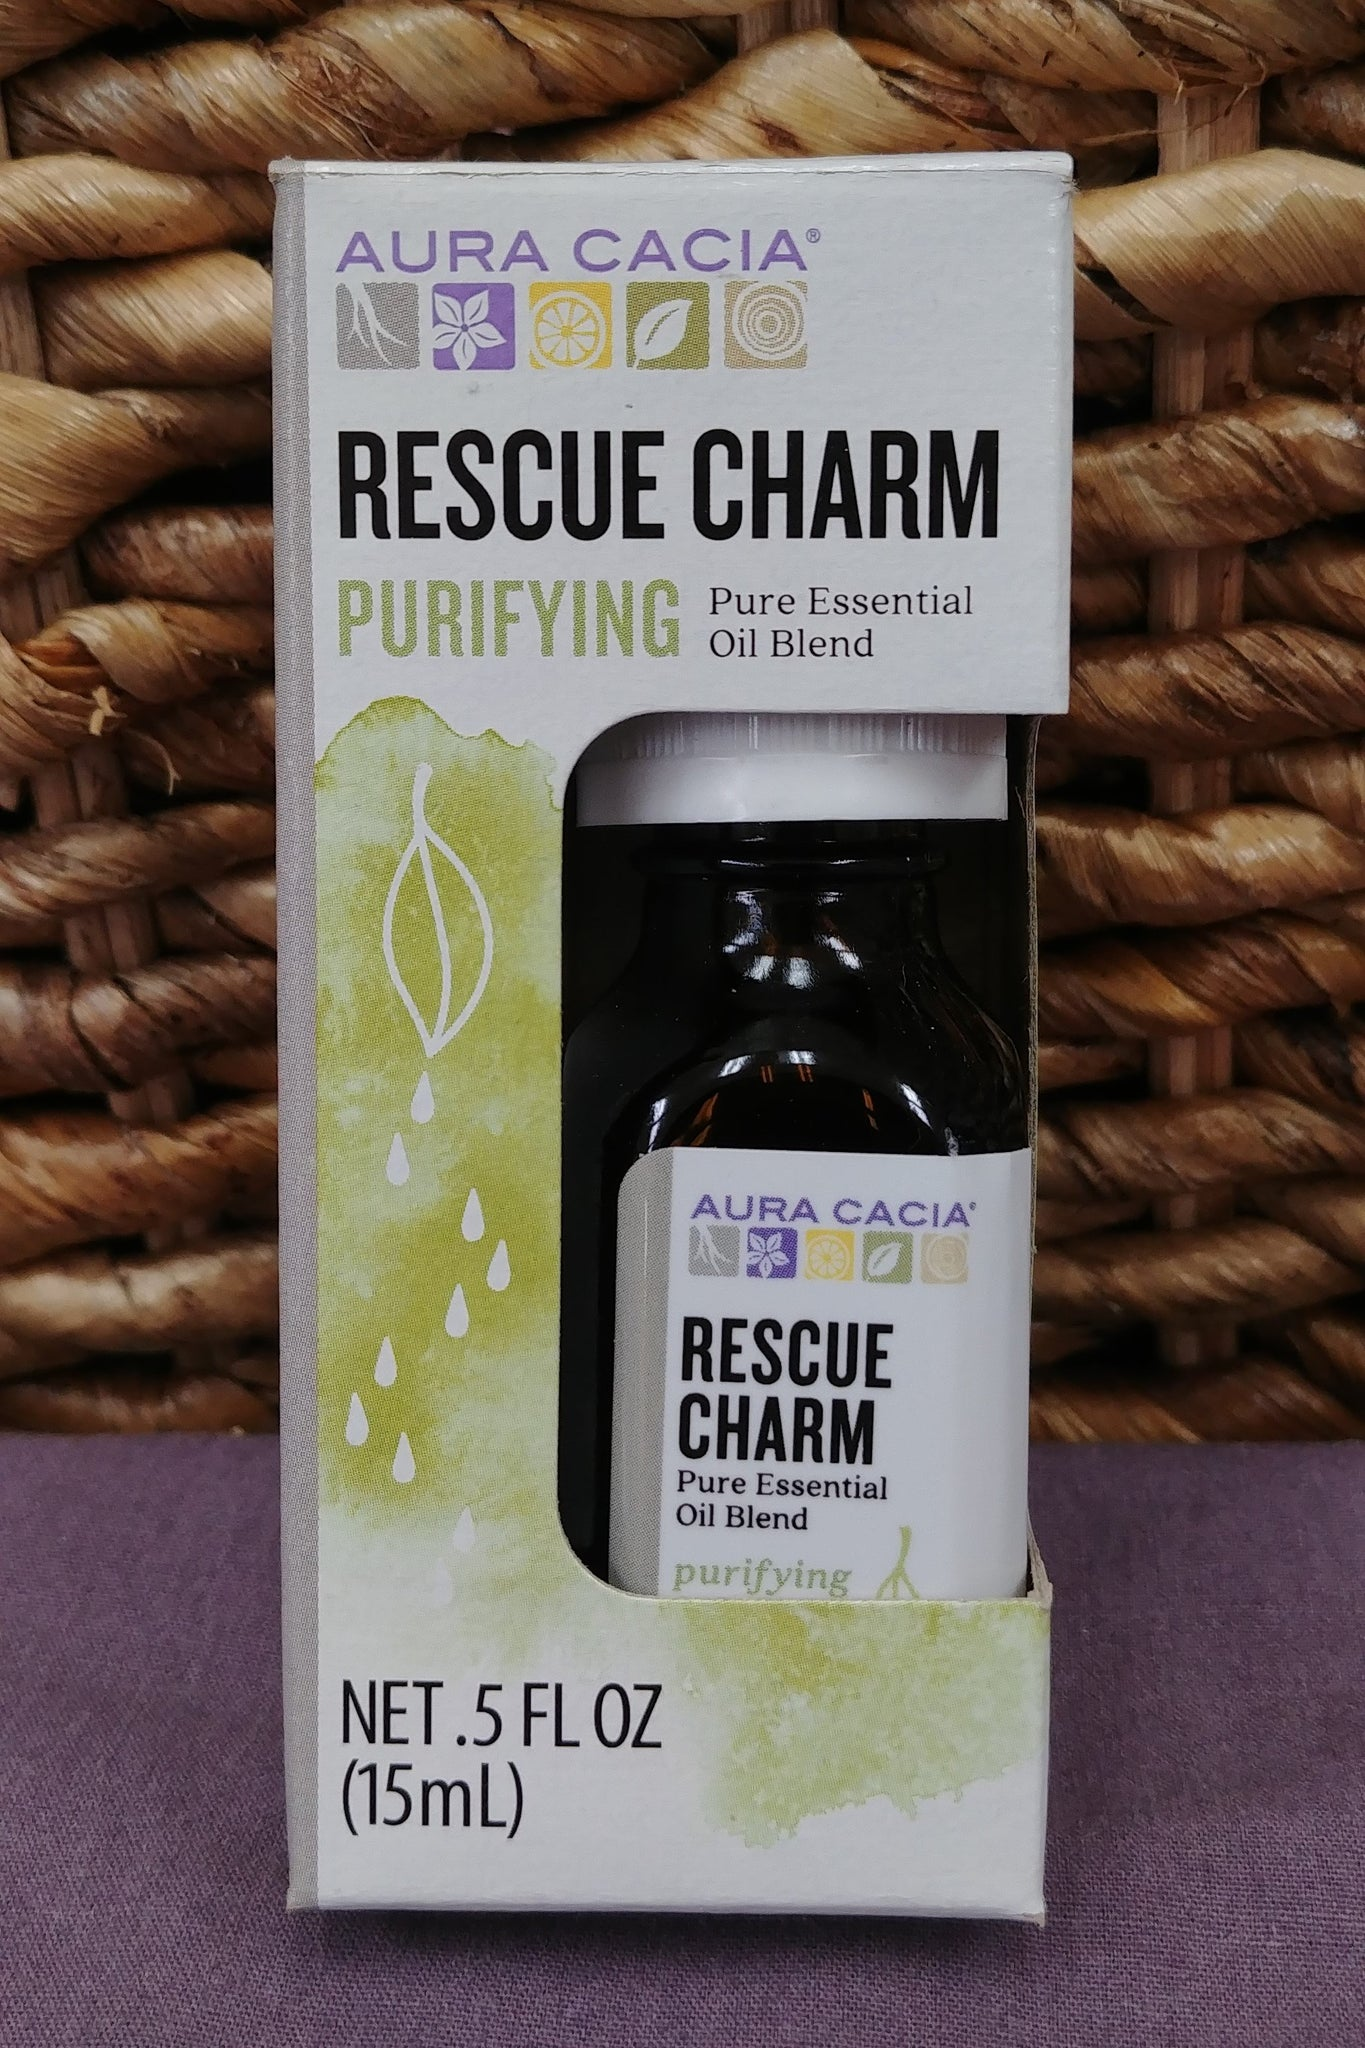 Rescue Charm Purifying Essential Oil Blend